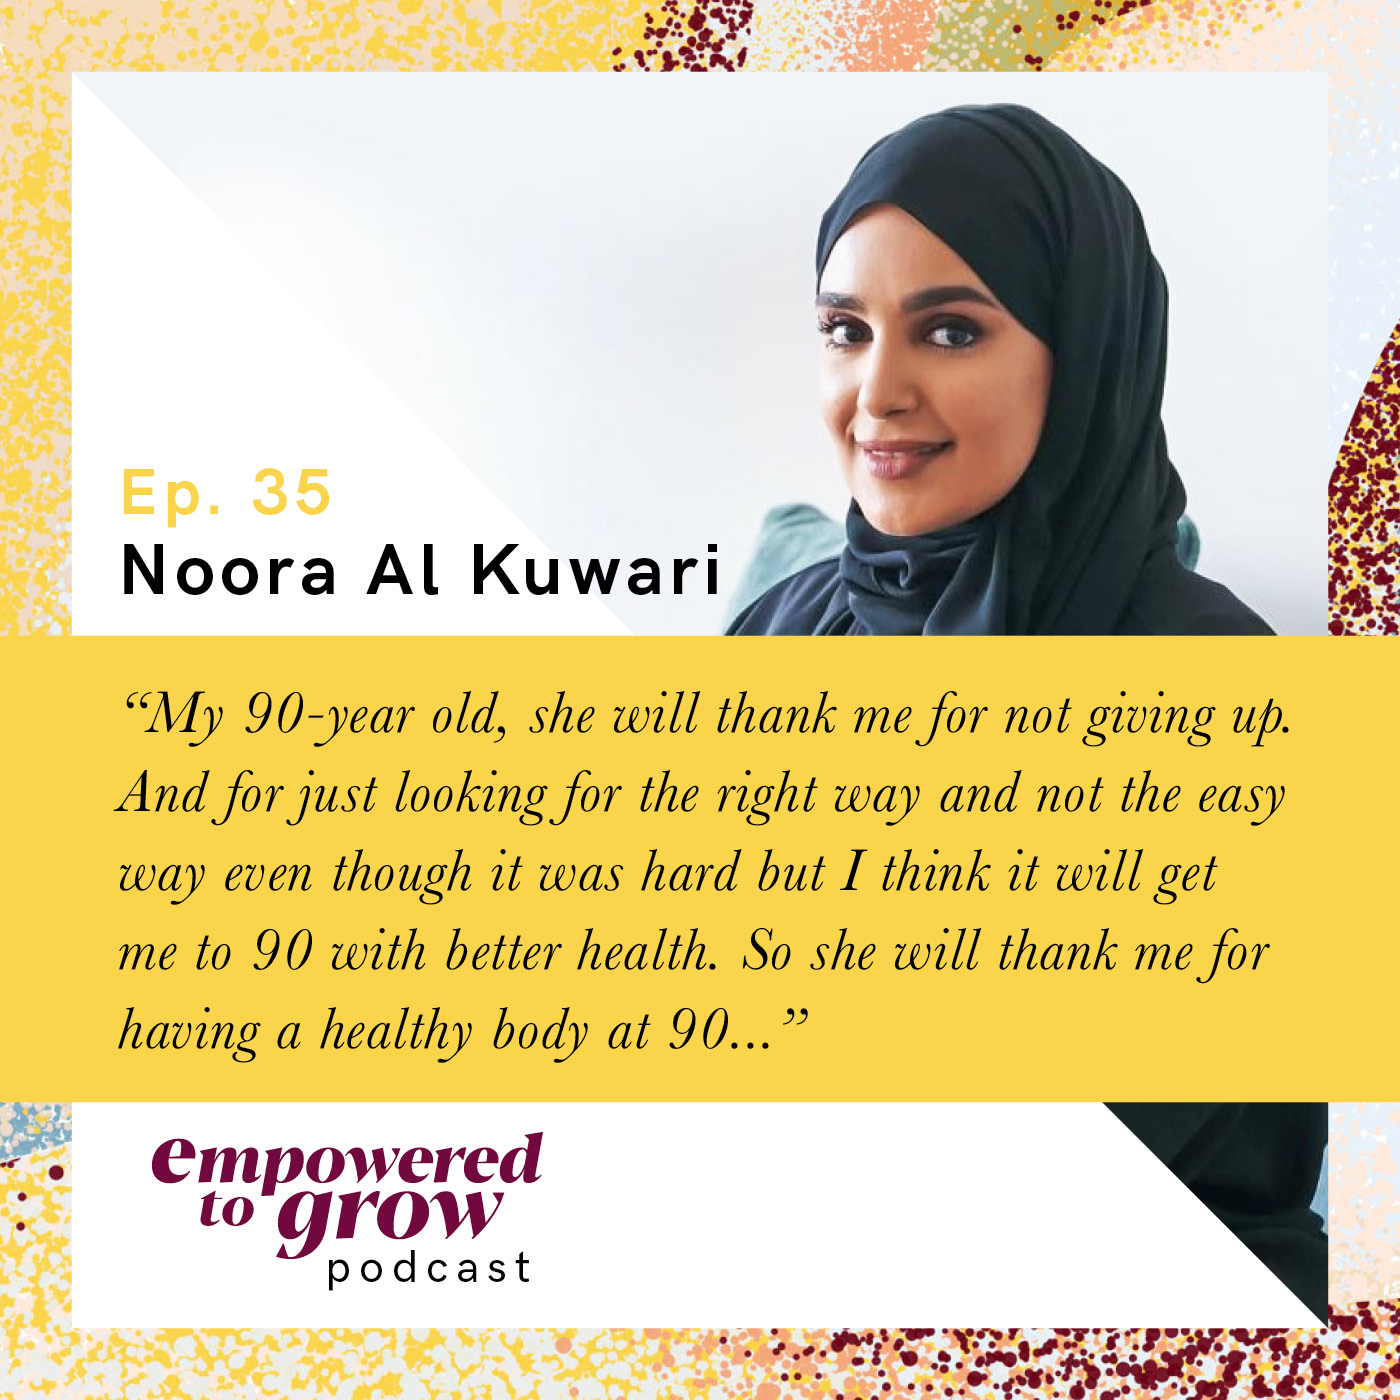 Ep. 35 – Noora Al Kuwari – From a Bullied, Perceived-Overweight Child to a Health Coach Advocating Wellness & Nourishment